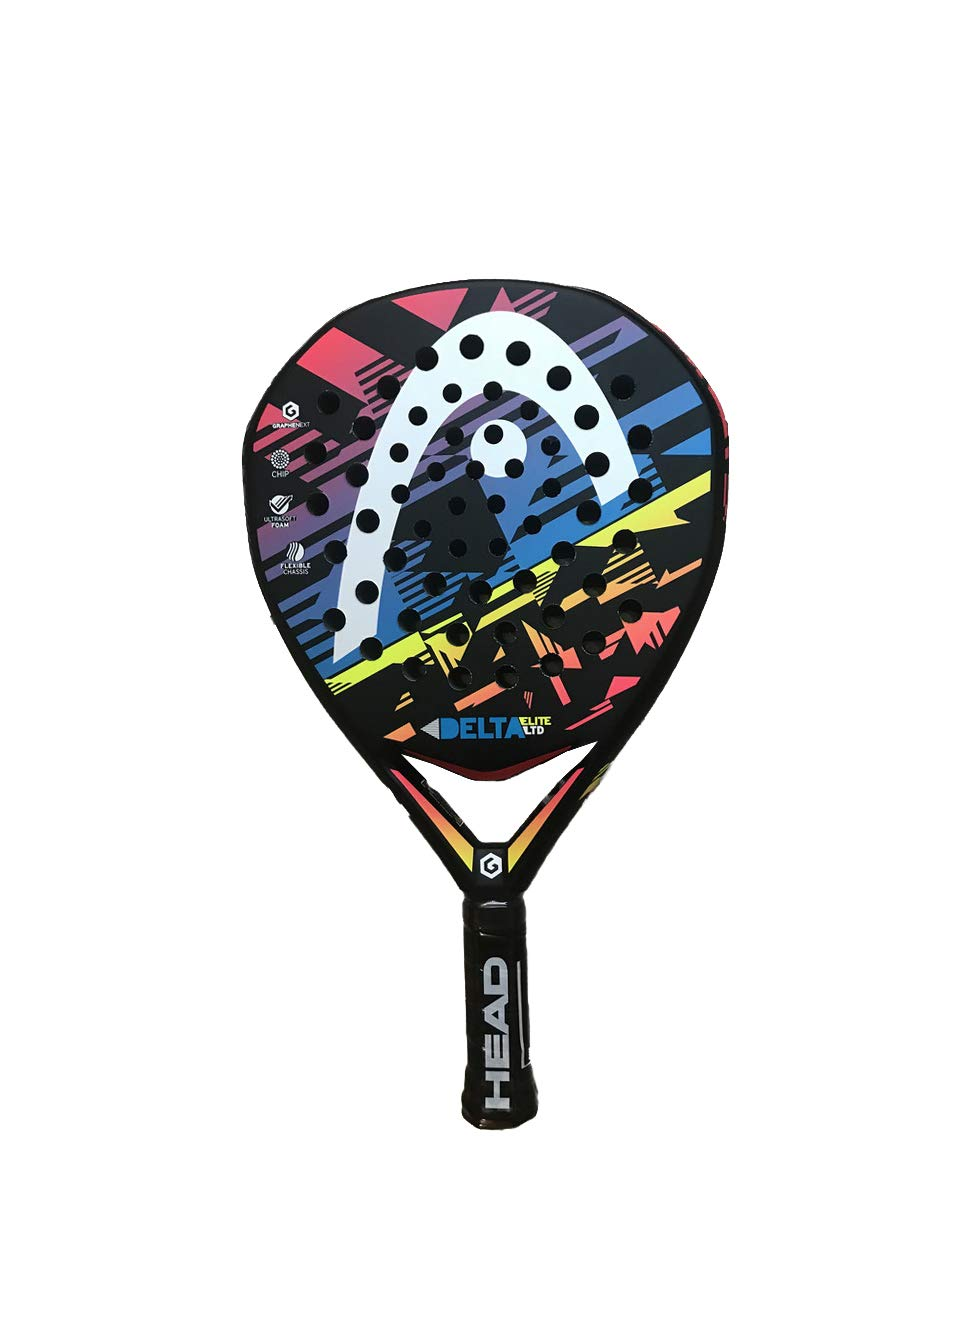 Pala de pádel GrapheneXT Delta Elite LTD Head: Amazon.es: Deportes y aire libre